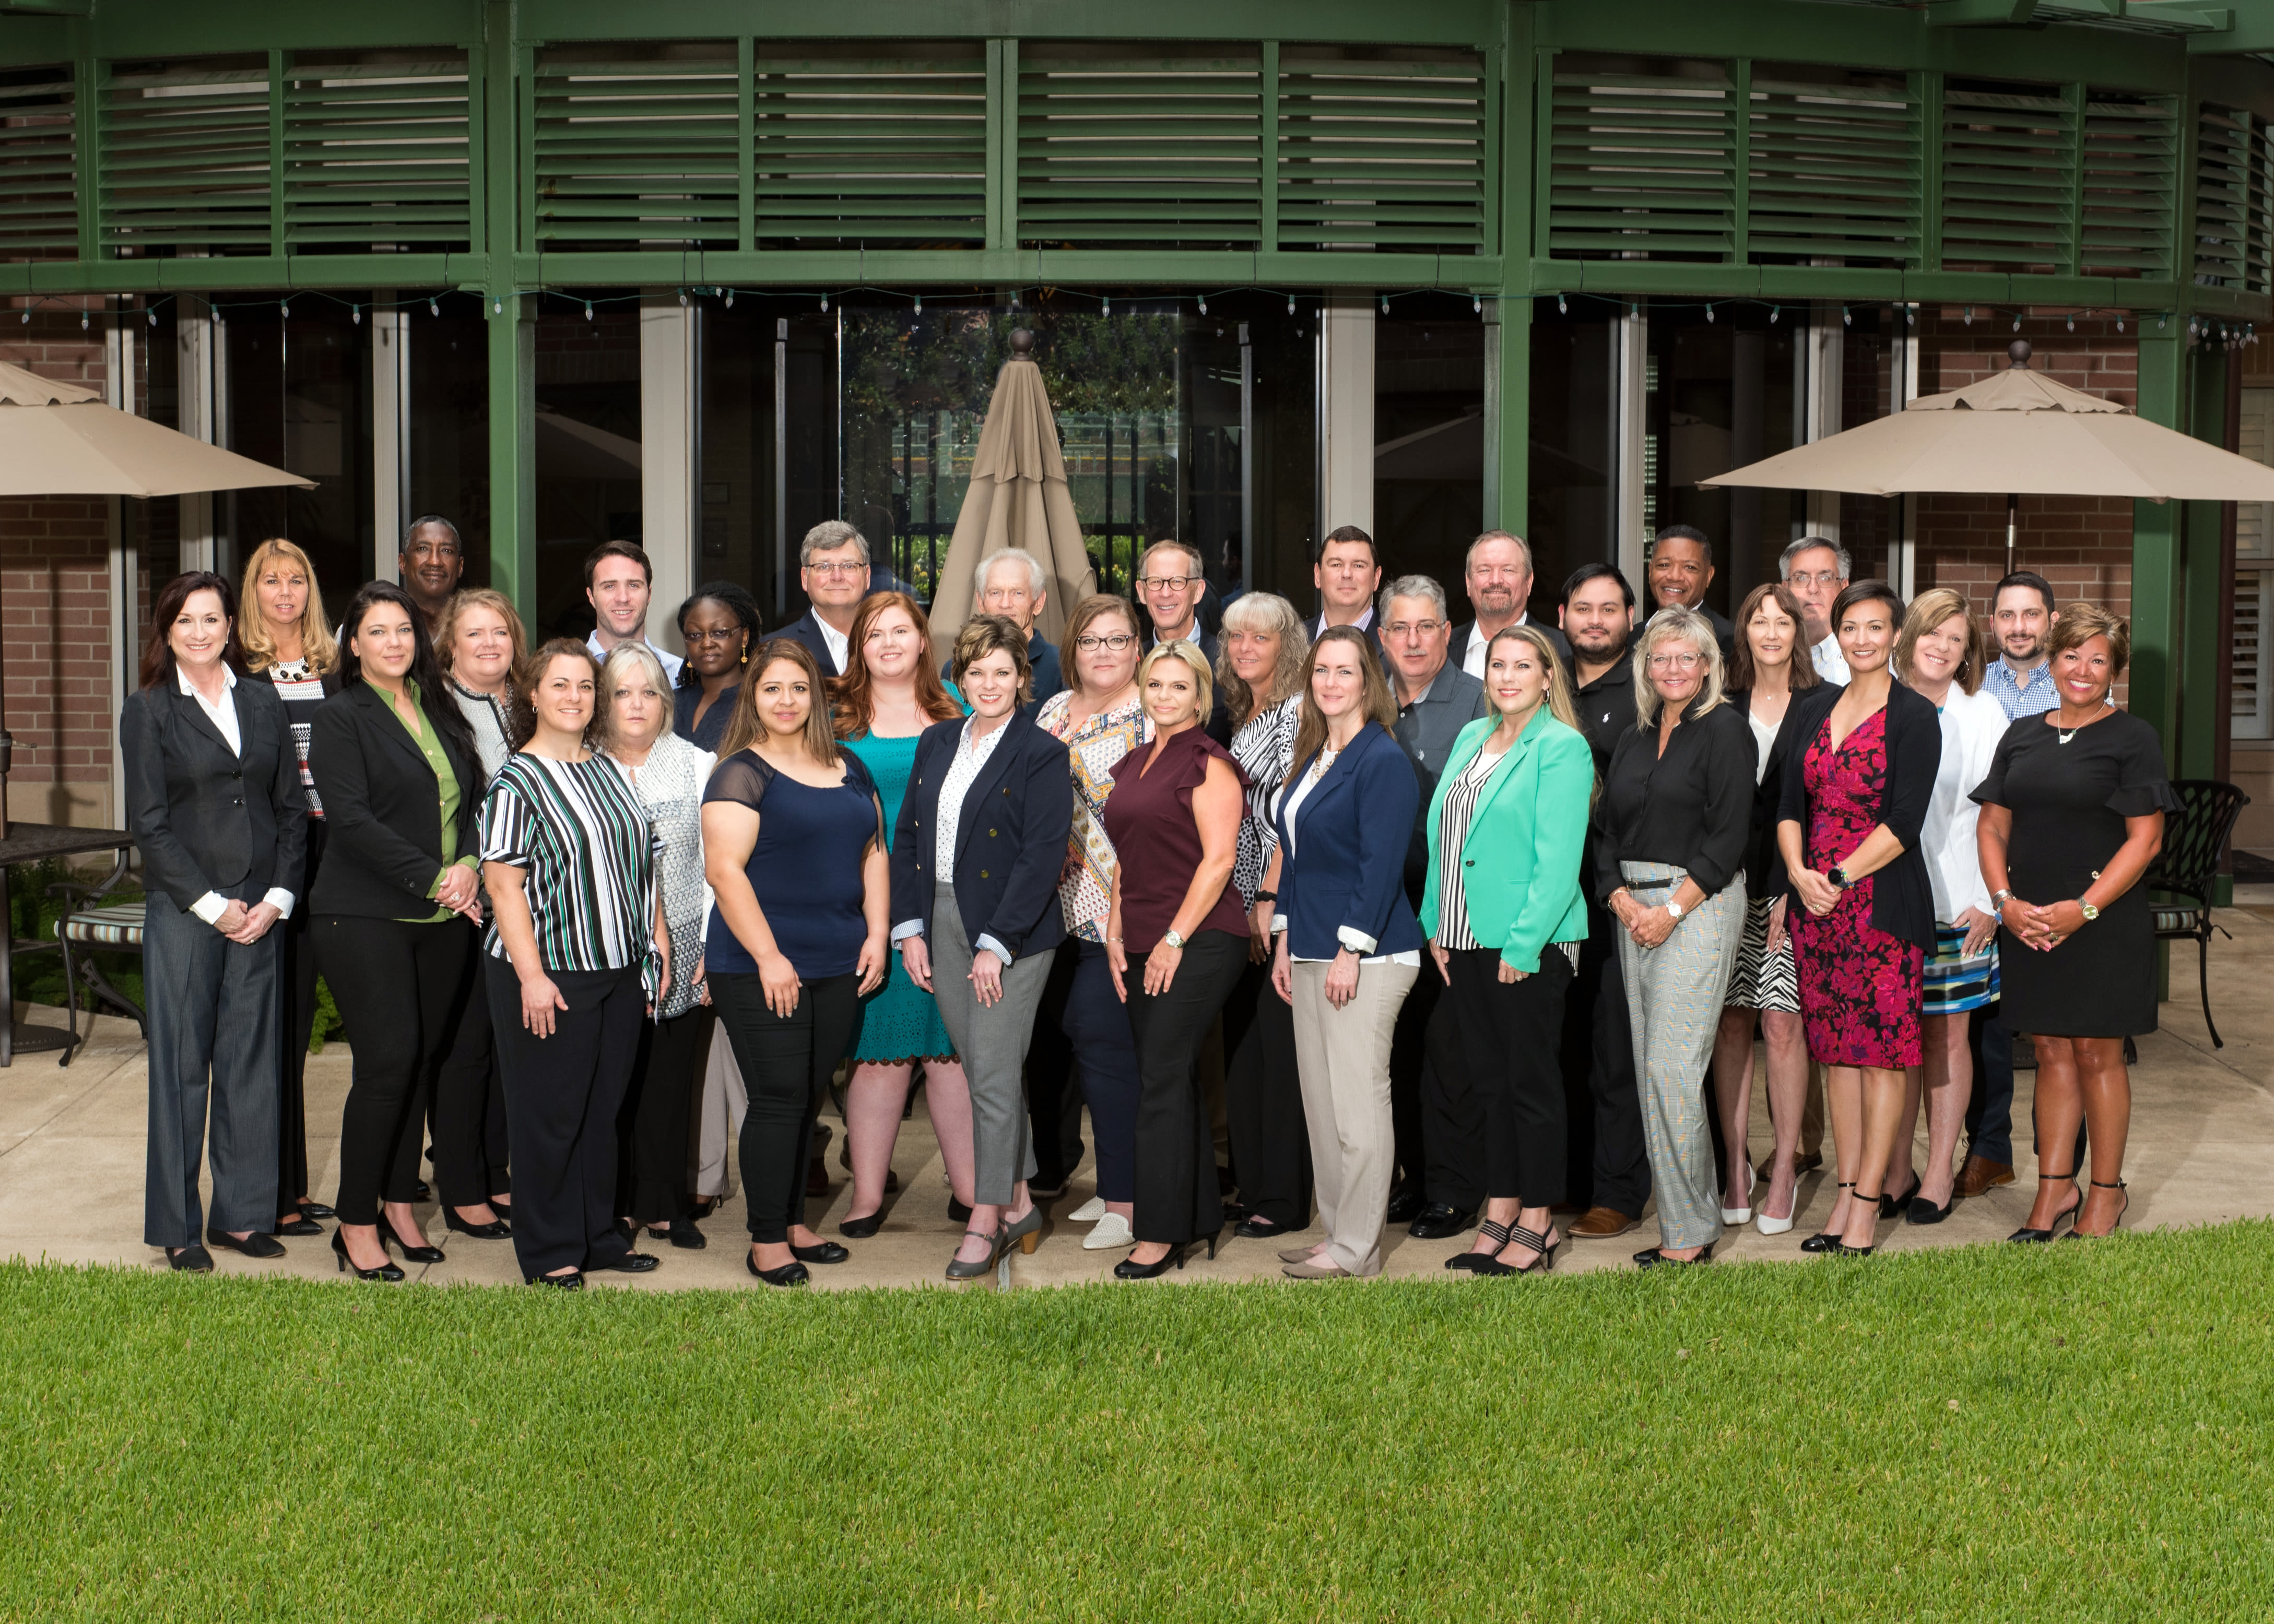 Professional and caring team at Stoney Brook of Belton in Belton, Texas